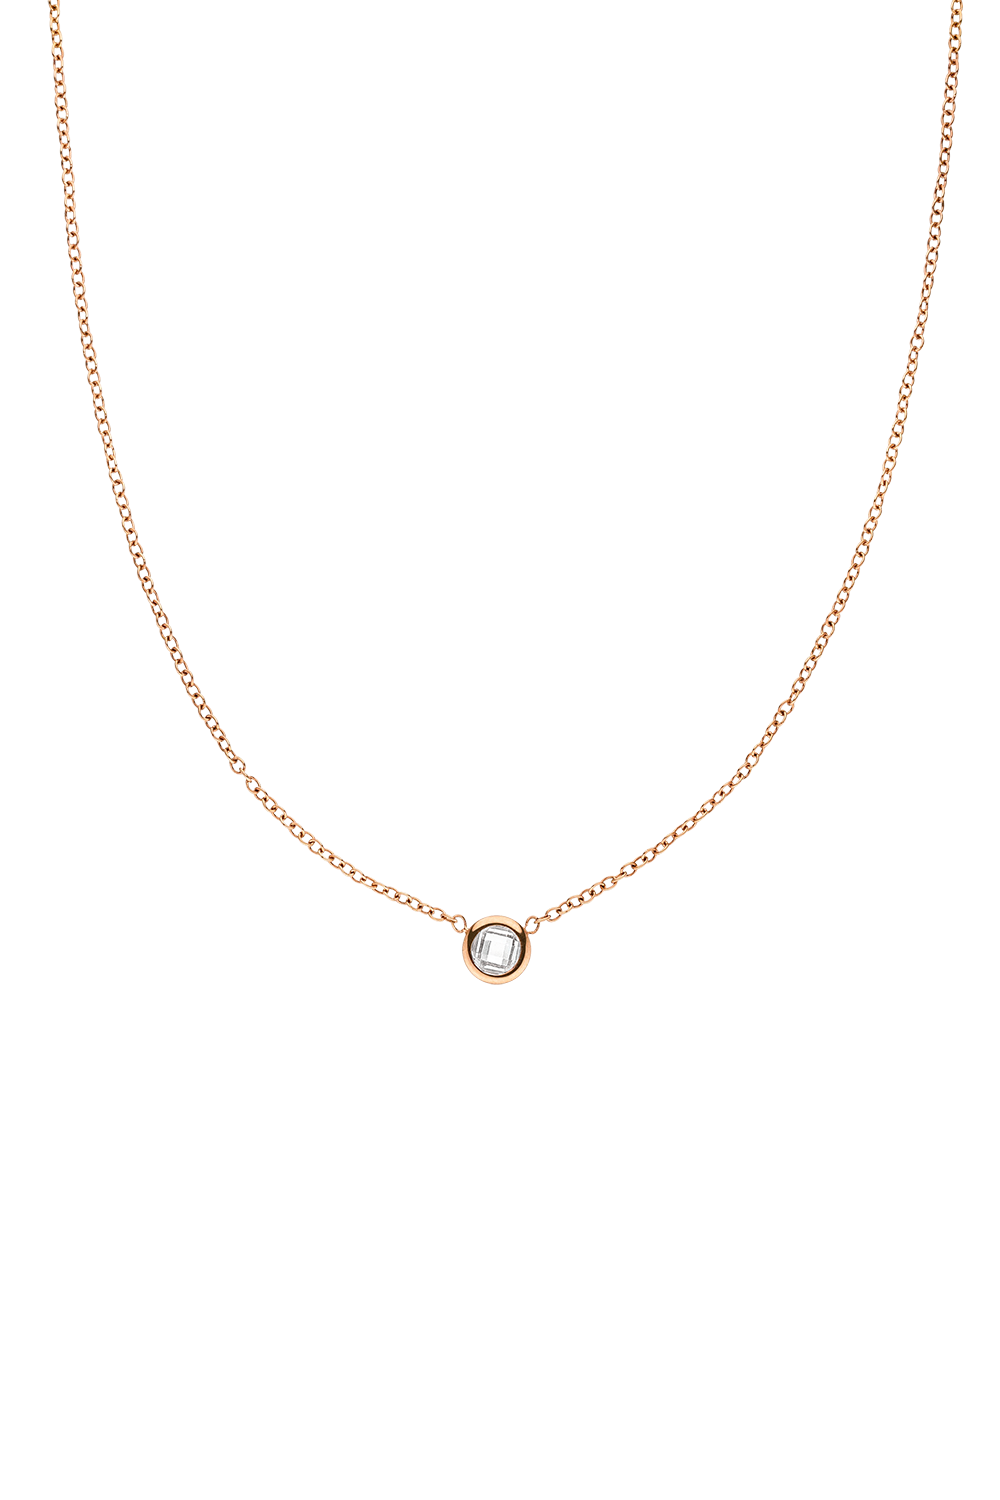 SPARKLE NECKLACE ROSÉGOLD